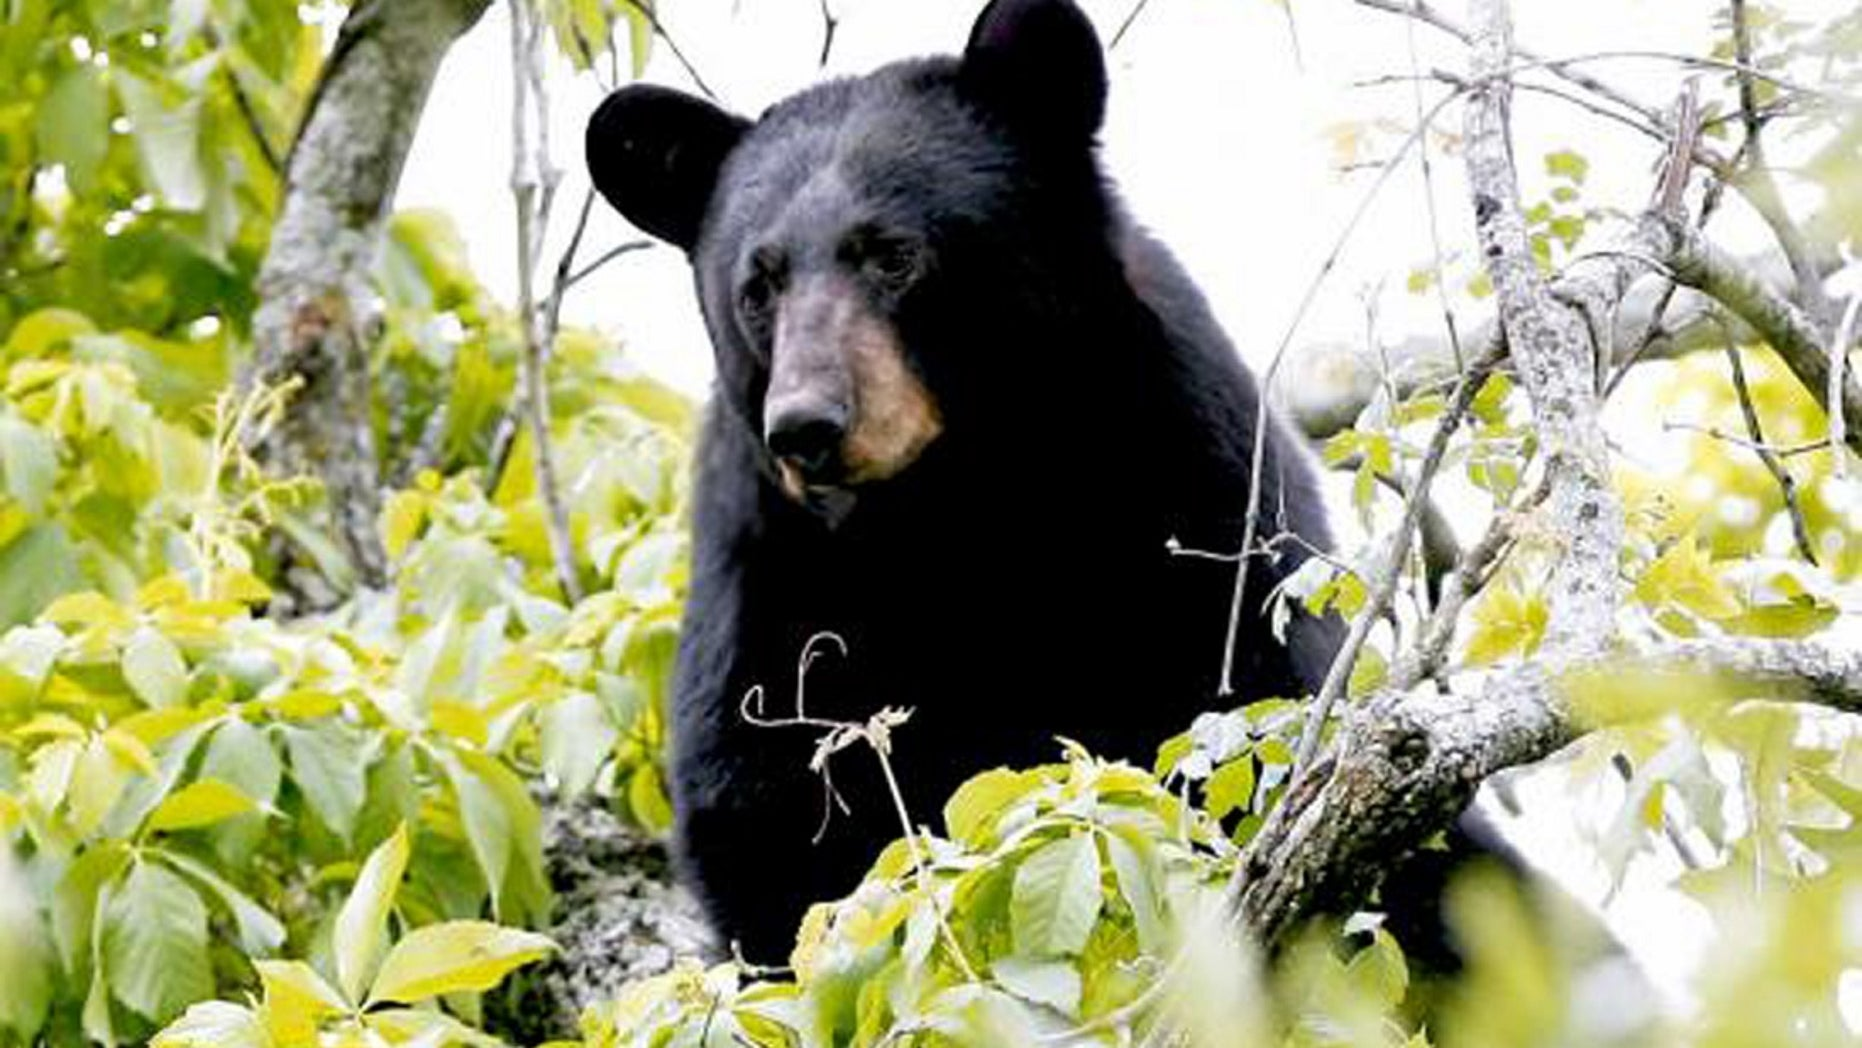 A Florida man came home recently to find a black bear at his doorstep. A bear is seen in a file photo.